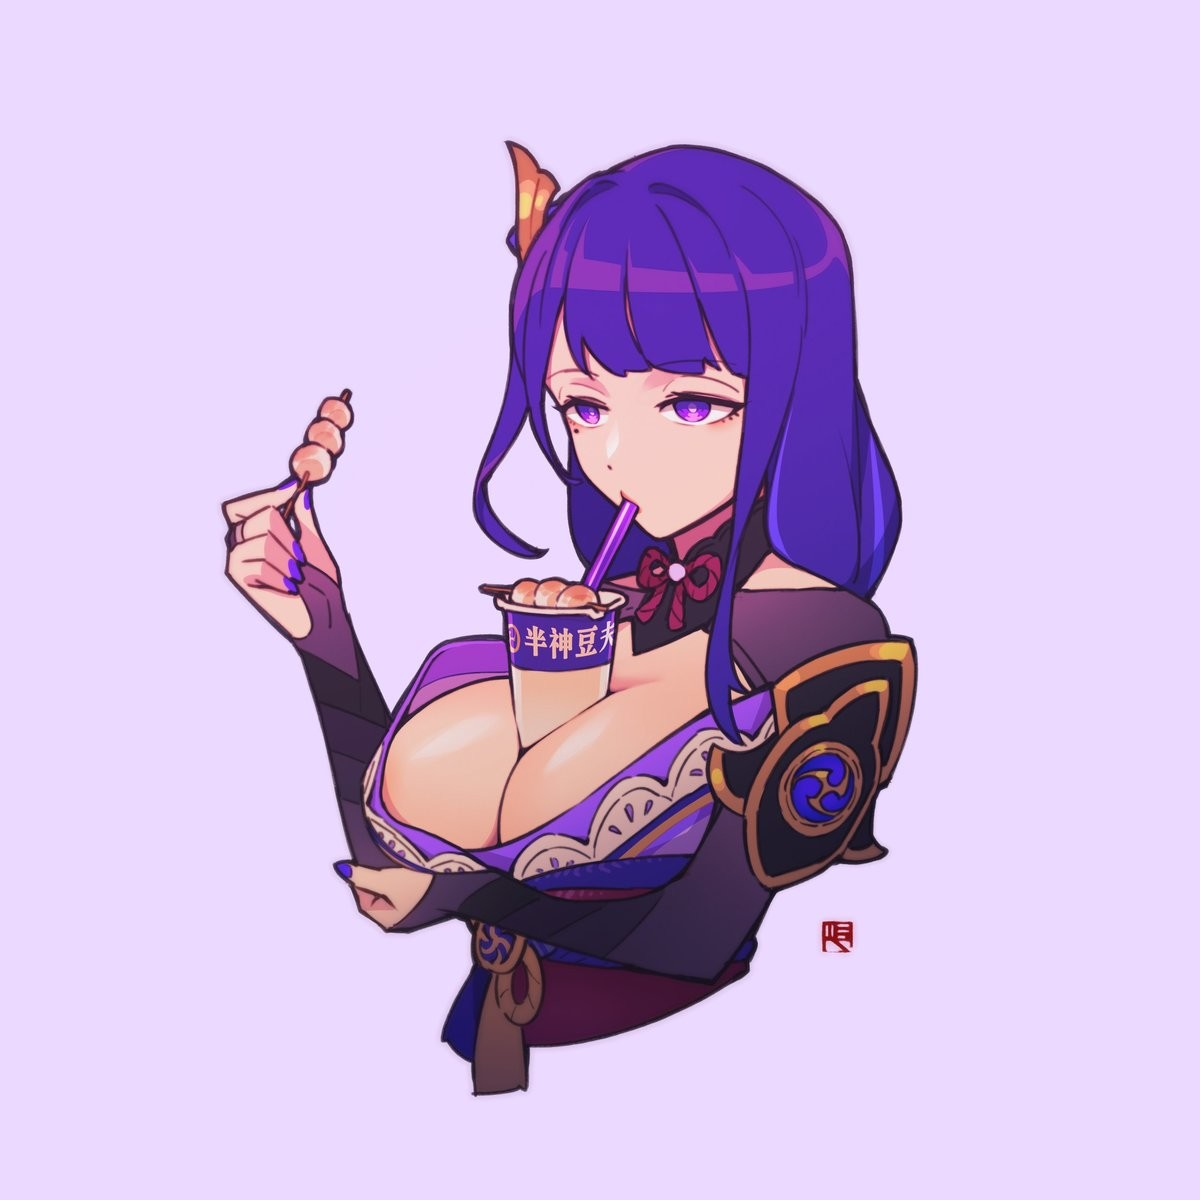 Baal boobies. I'm not a simp but uhh....... yes I am. Shes starting to come along nicely, or at least being usable in Inazuma overworld and high level domains/a